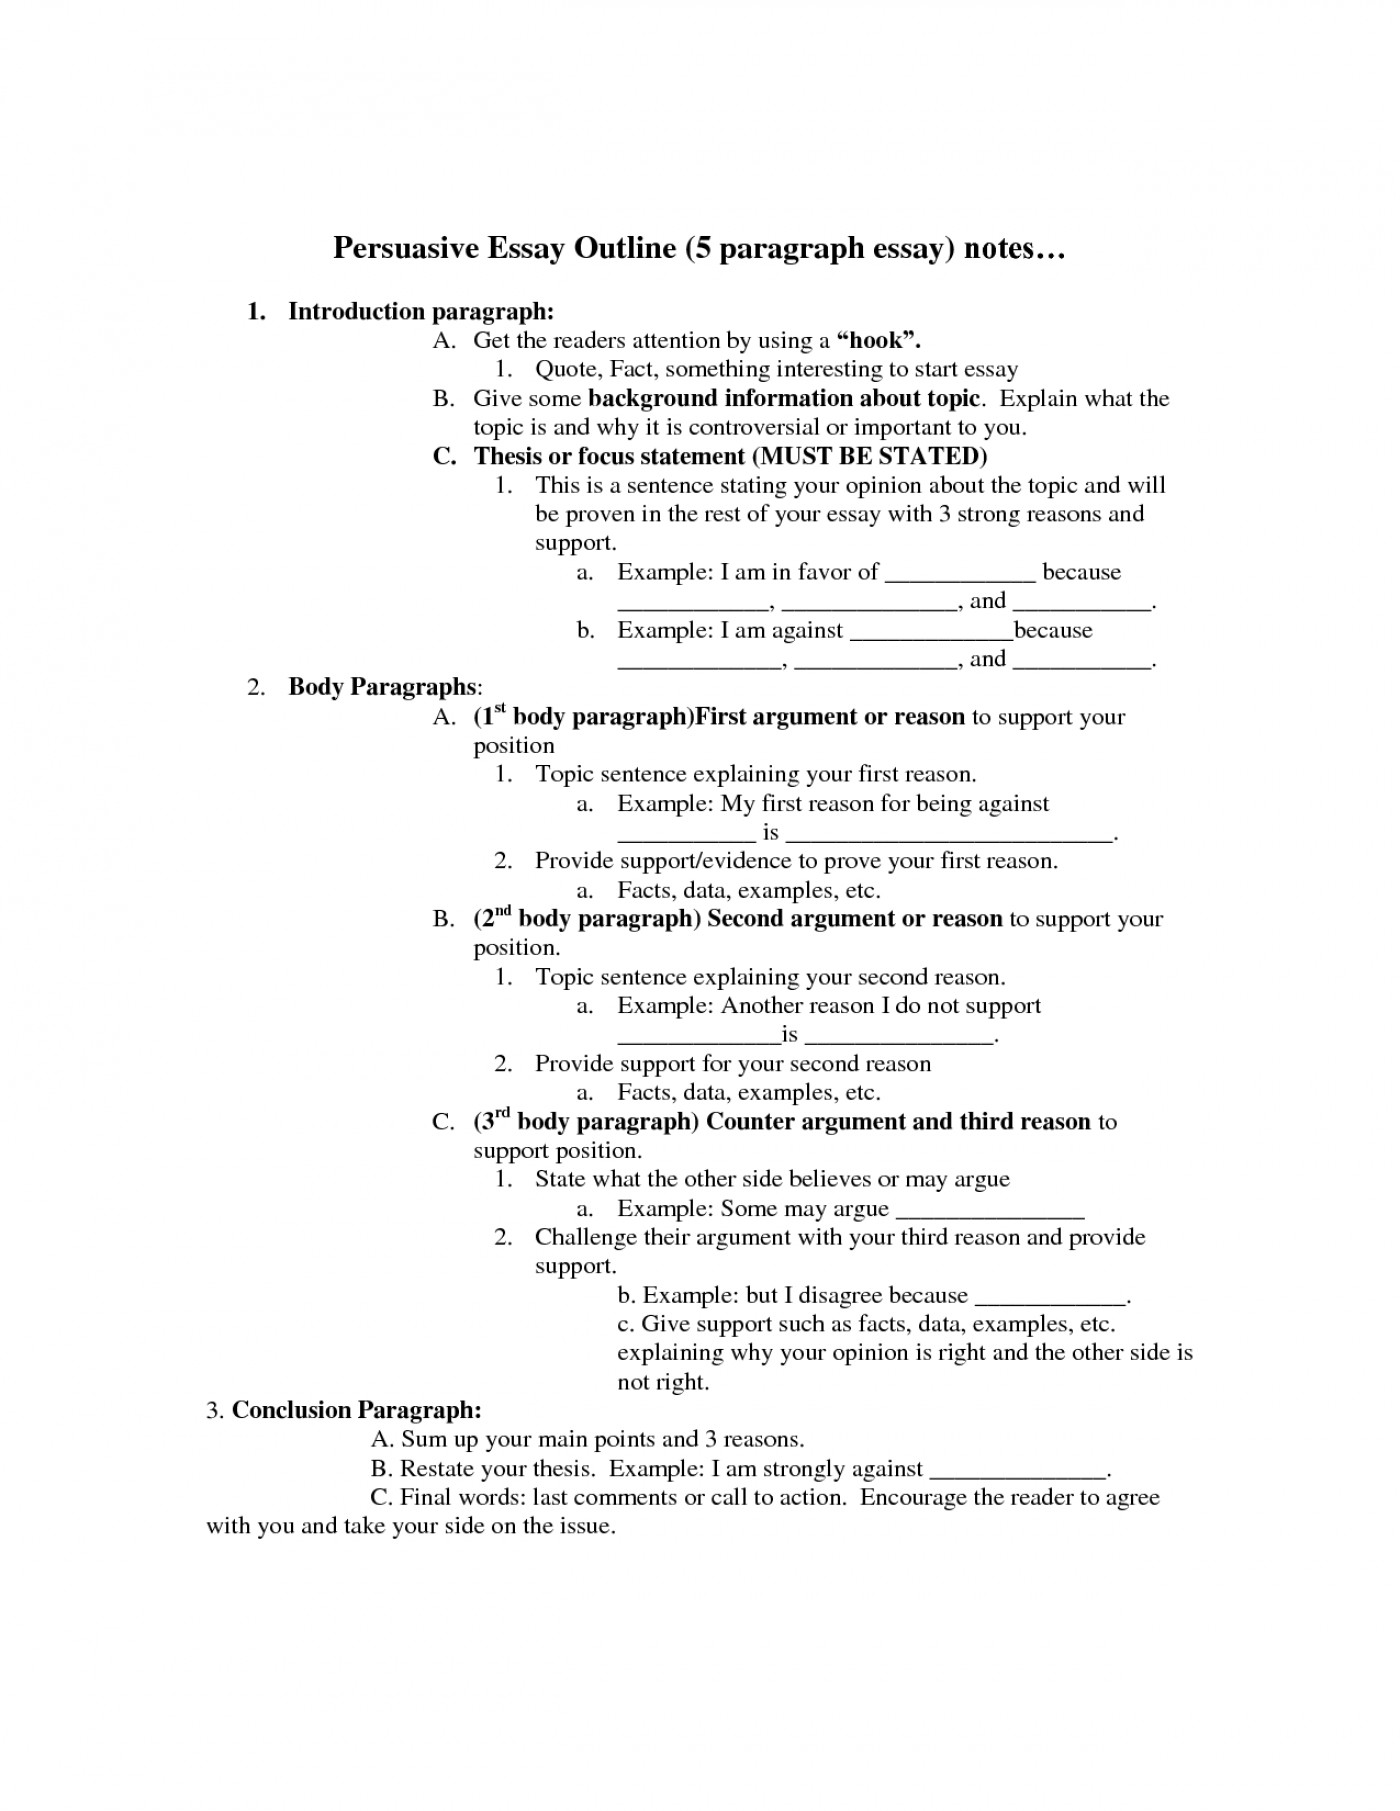 006 Persuasive Essay Outline Unbelievable Worksheet Paper Examples Template 5th Grade 1400